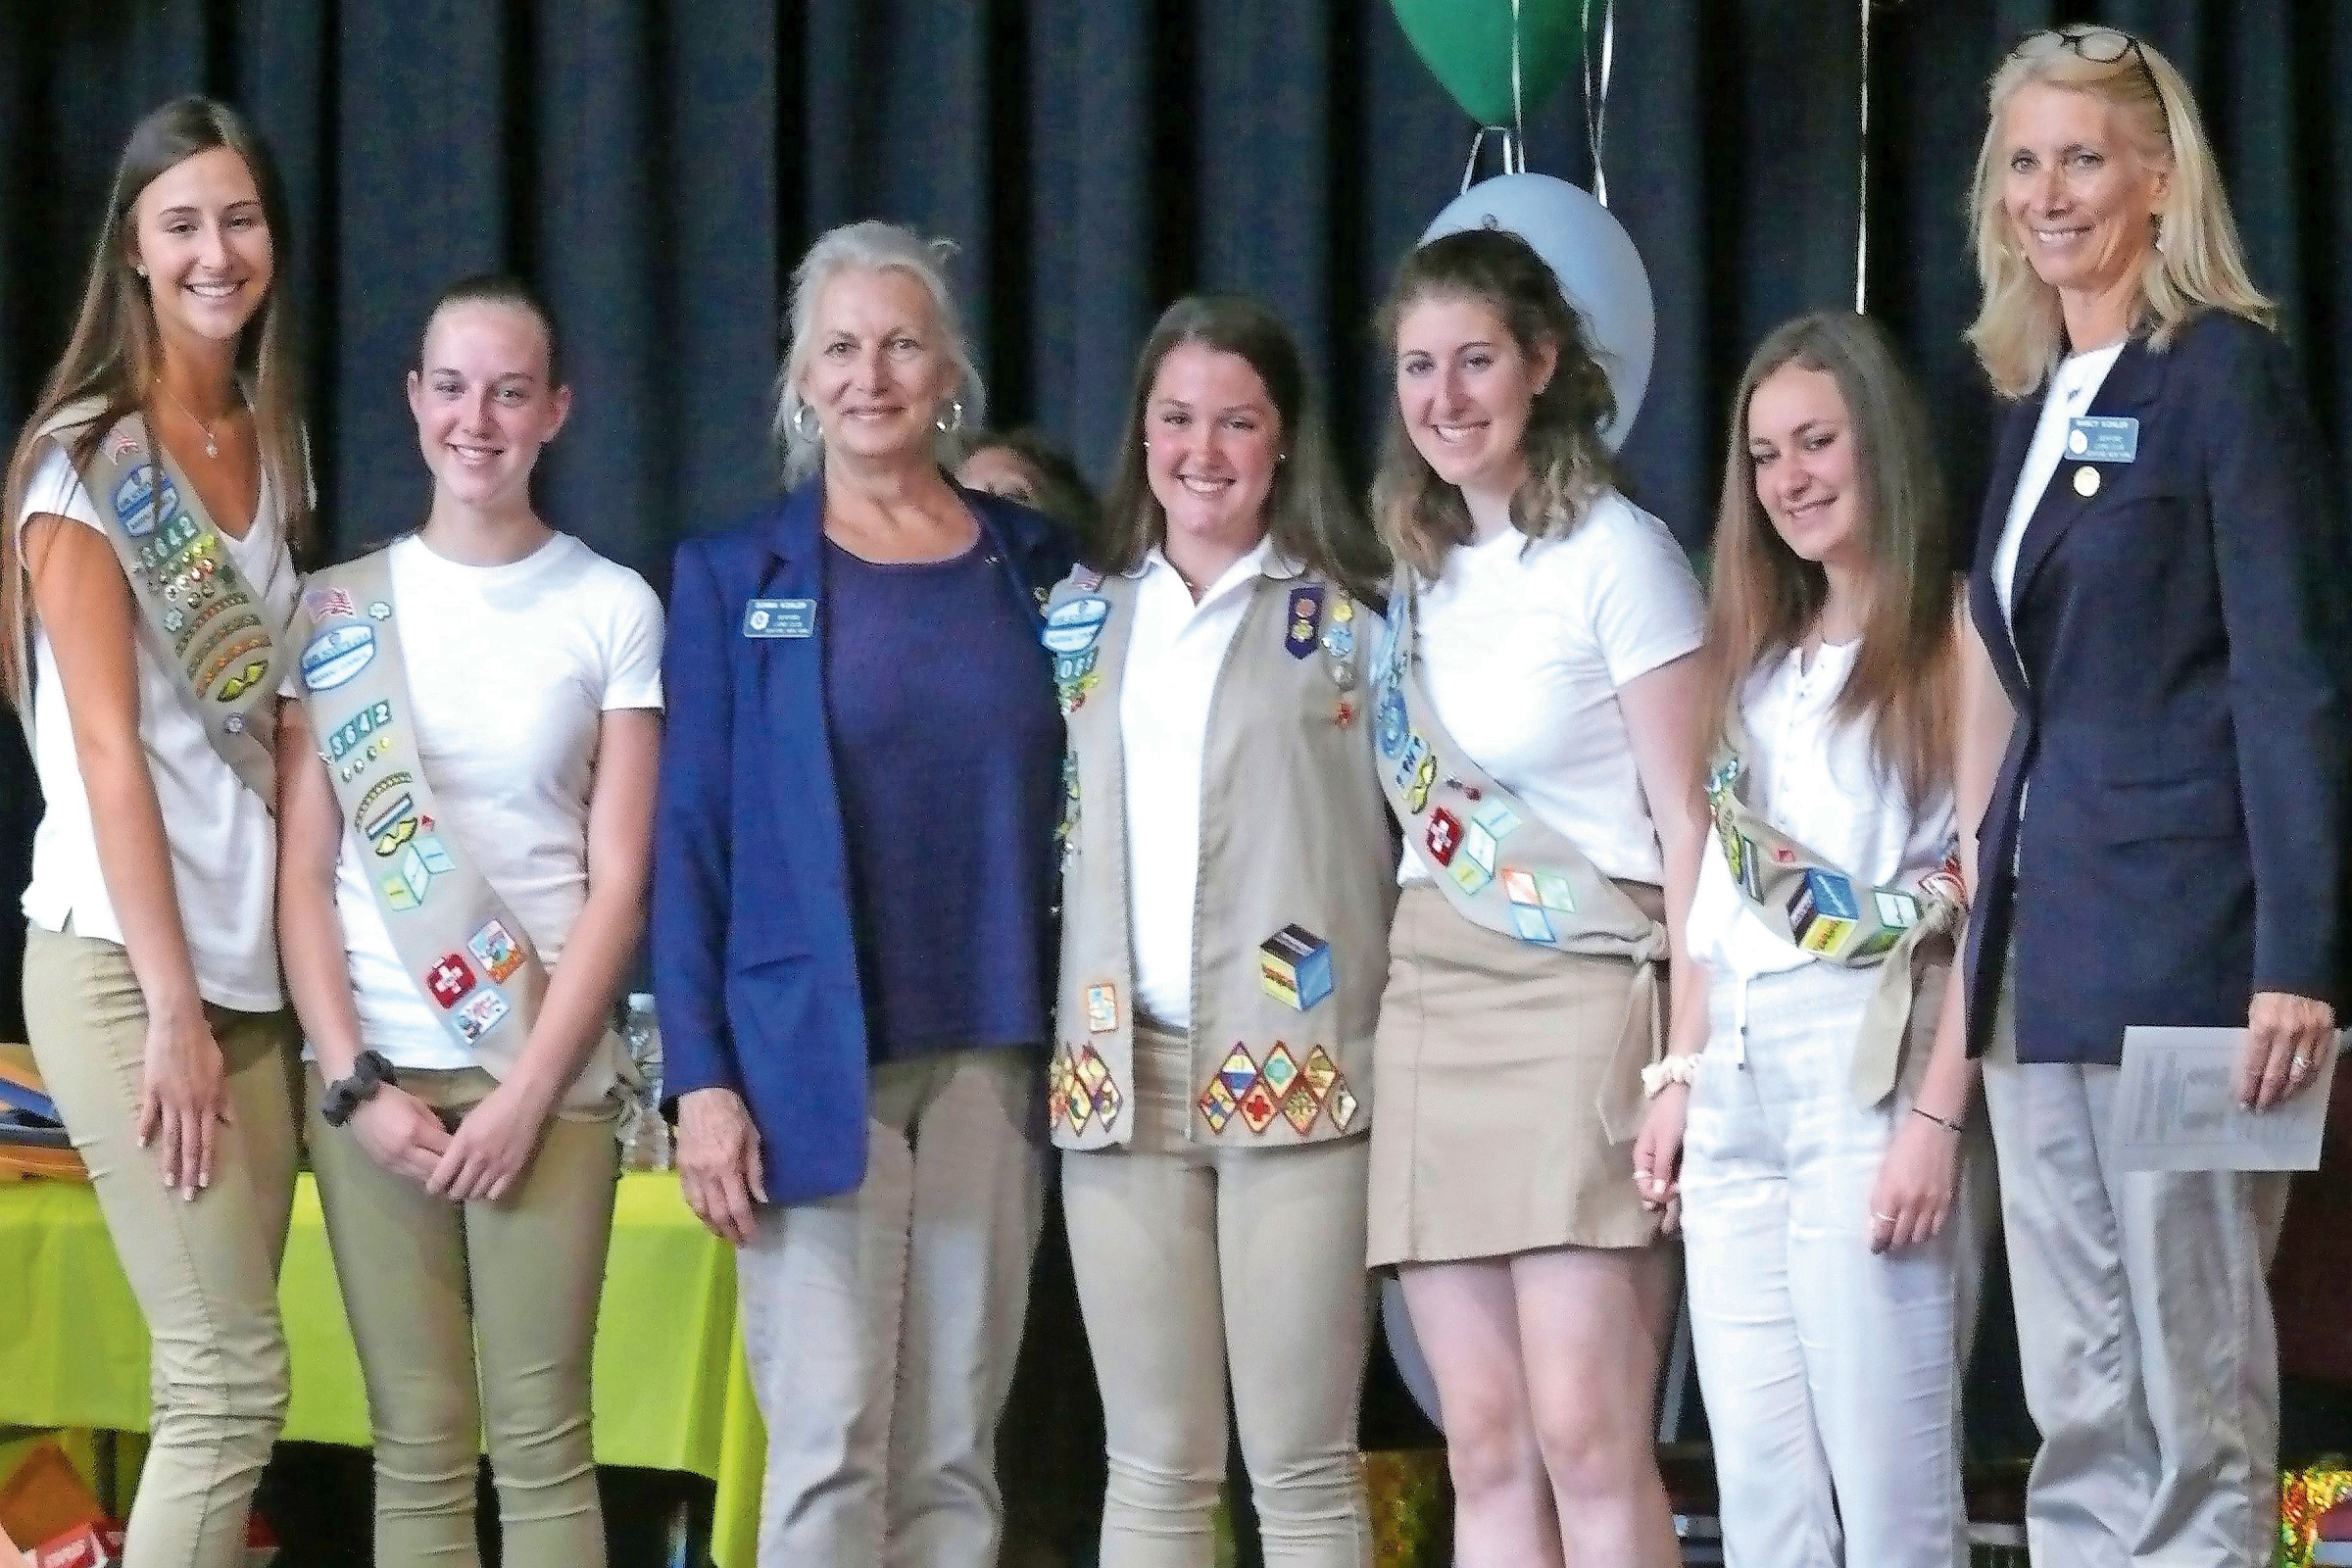 Seaford Lions Club leaders Donna and Nancy Kohler congratulated the local Girl Scout Gold Award winners: Ruth Sobey, Ashley Soliwoda, Lauren Rosenberg, Alessia Russo and Grace Anne McKenna.